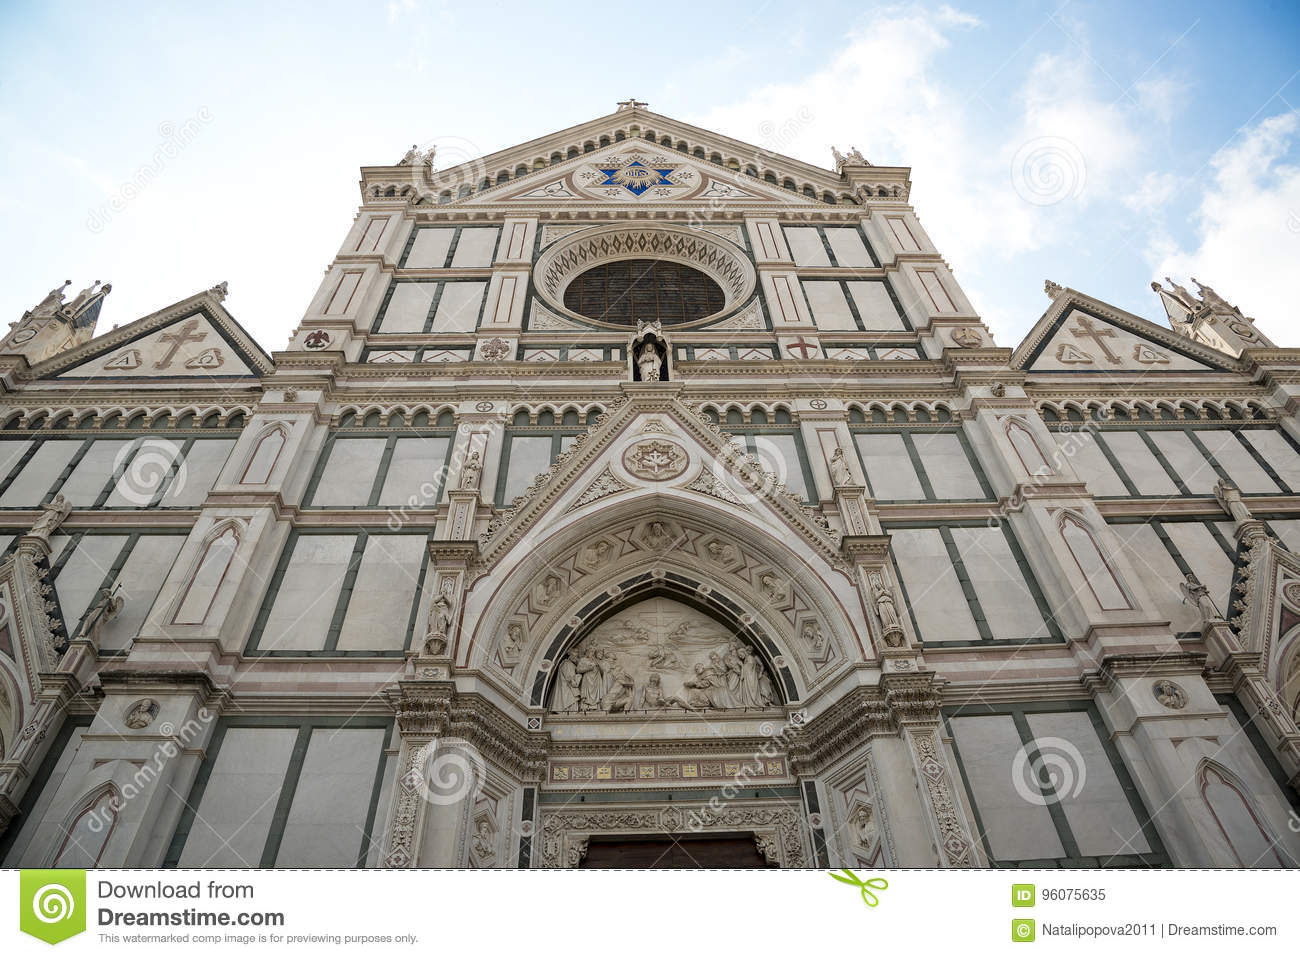 The Basilica di Santa Croce & x28;Basilica of the Holy Cross& x29; on square of the same name in Florence, Tuscany, Italy.